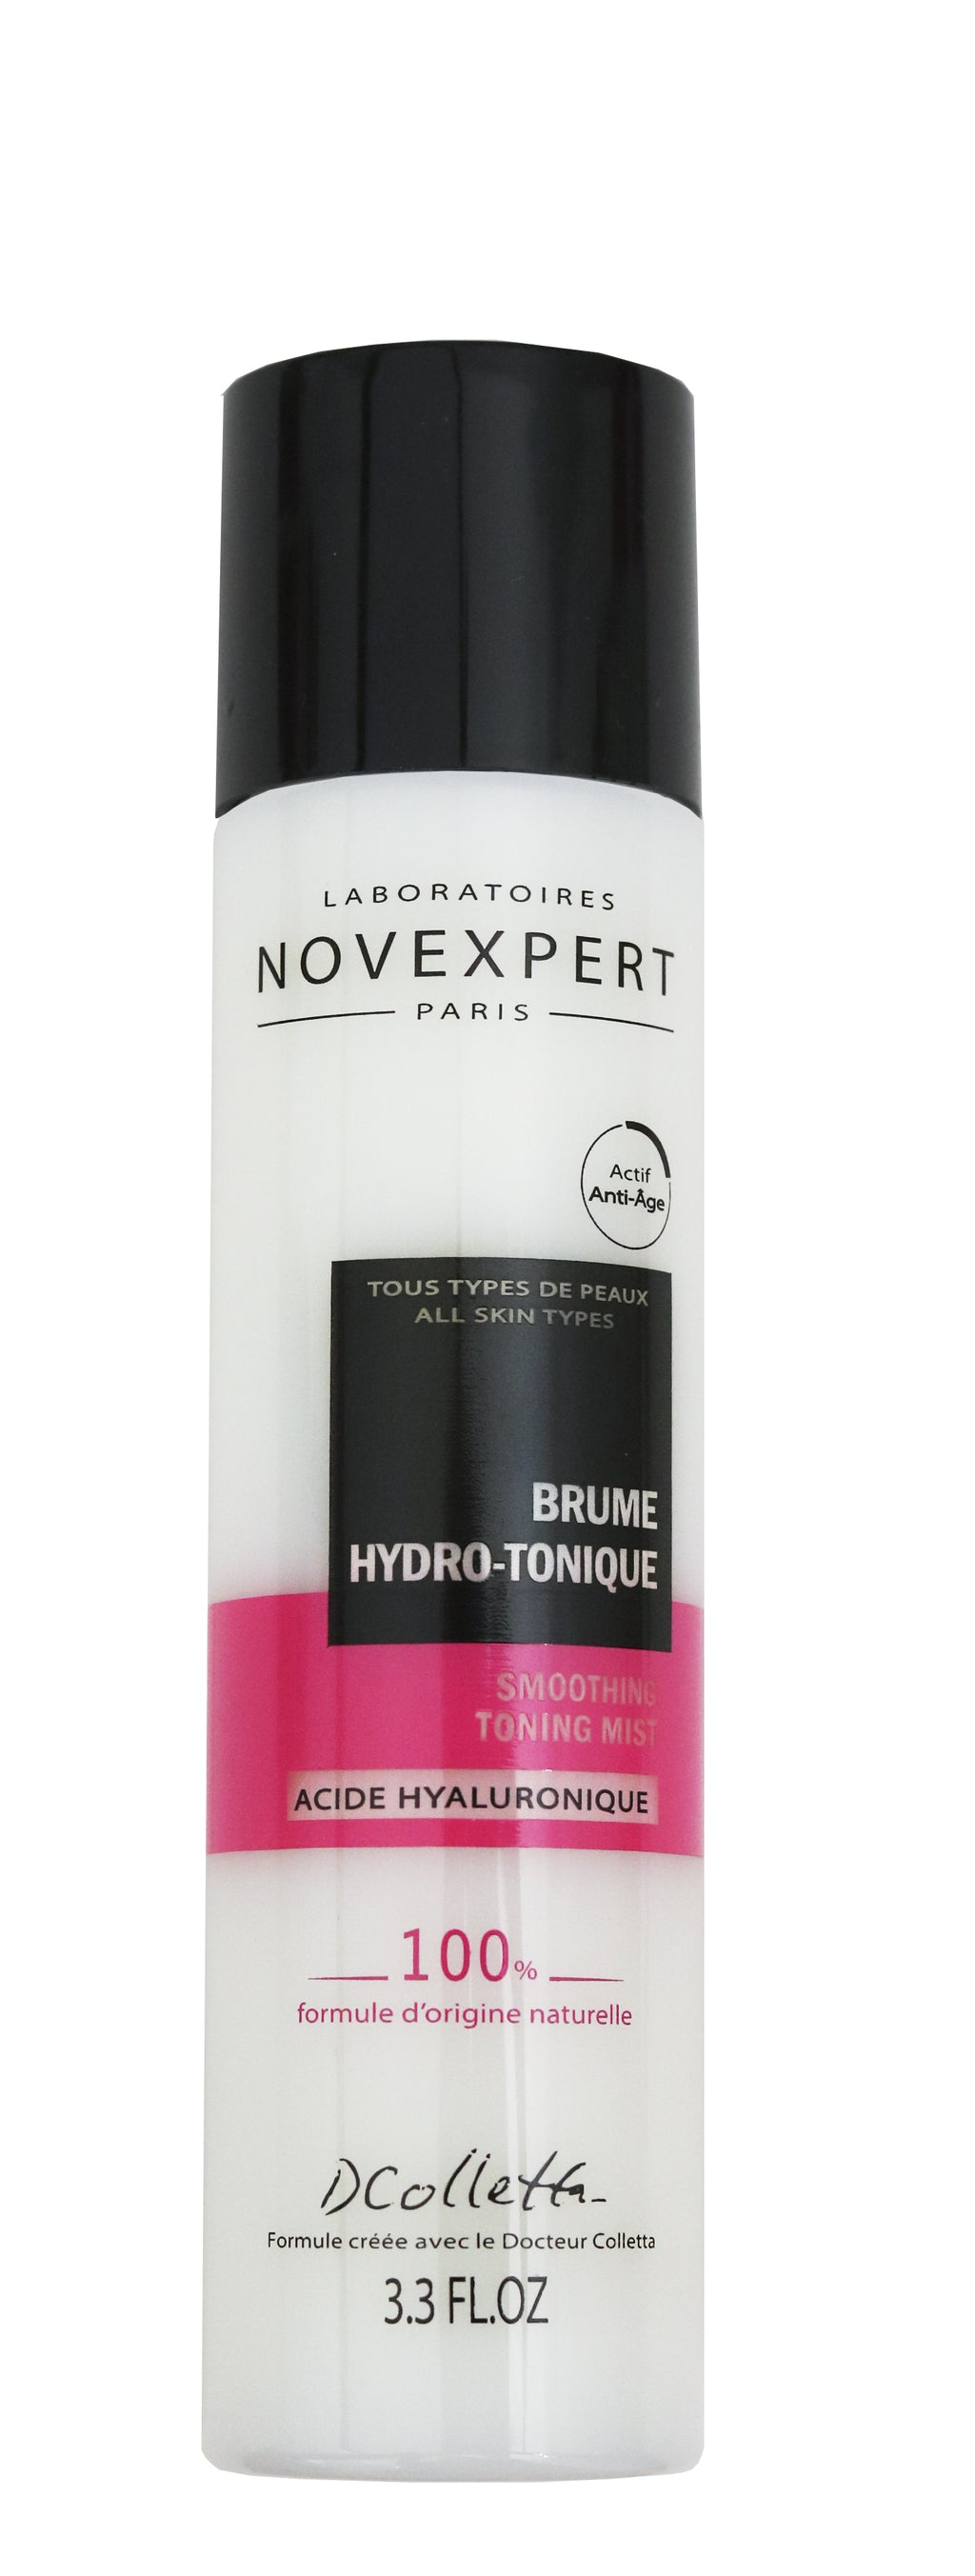 Novexpert Smoothing Toning Mist with Hyaluronic Acid – 100ml